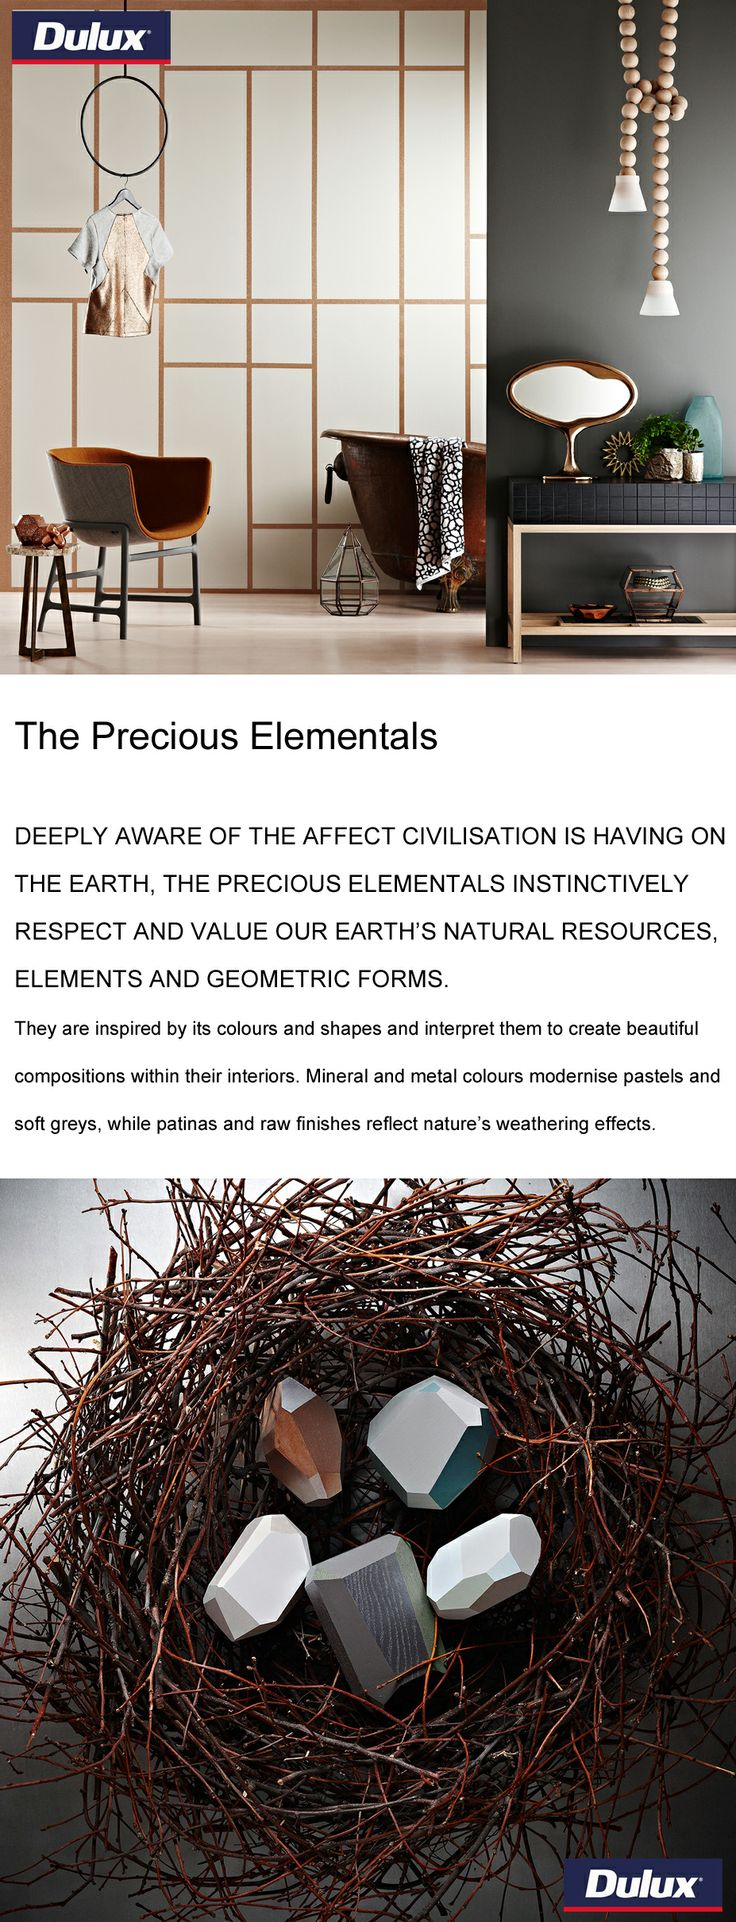 """The Precious Elementals"" colour forecast from Dulux for 2014.   www.lahood.co.nz"